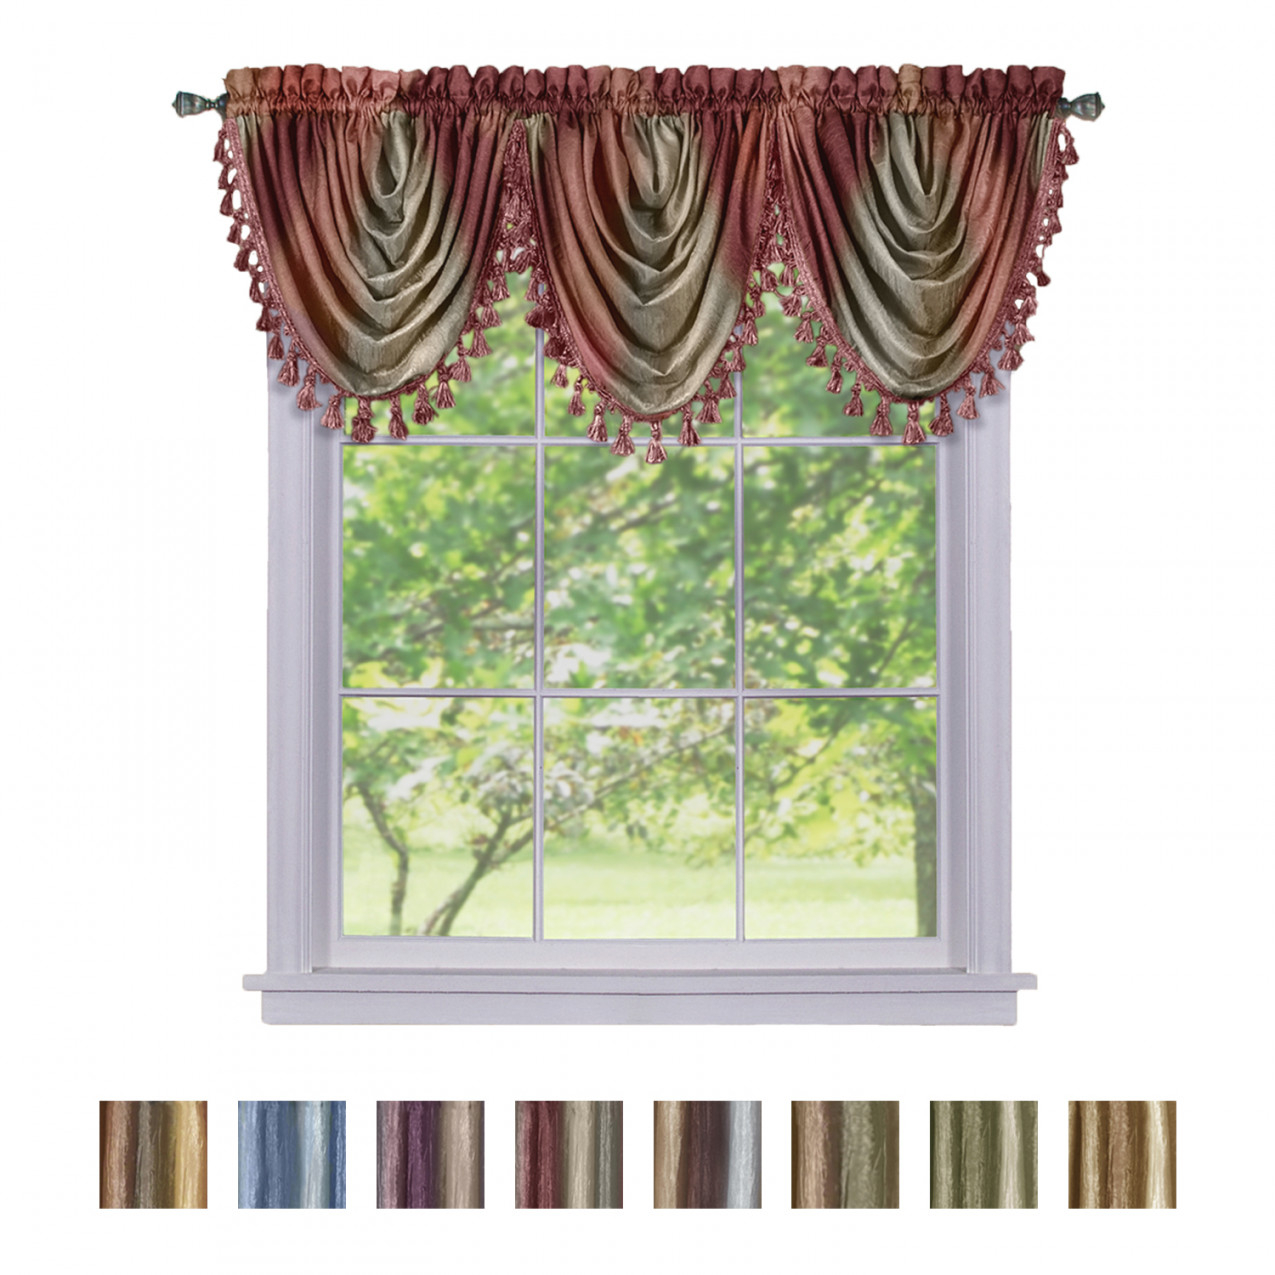 Details About Window Curtains Modern Semi-Sheer Waterfall Valance For Living Room, Bedroom throughout 14+ Inspiration Gallery For Valance Curtains For Living Room